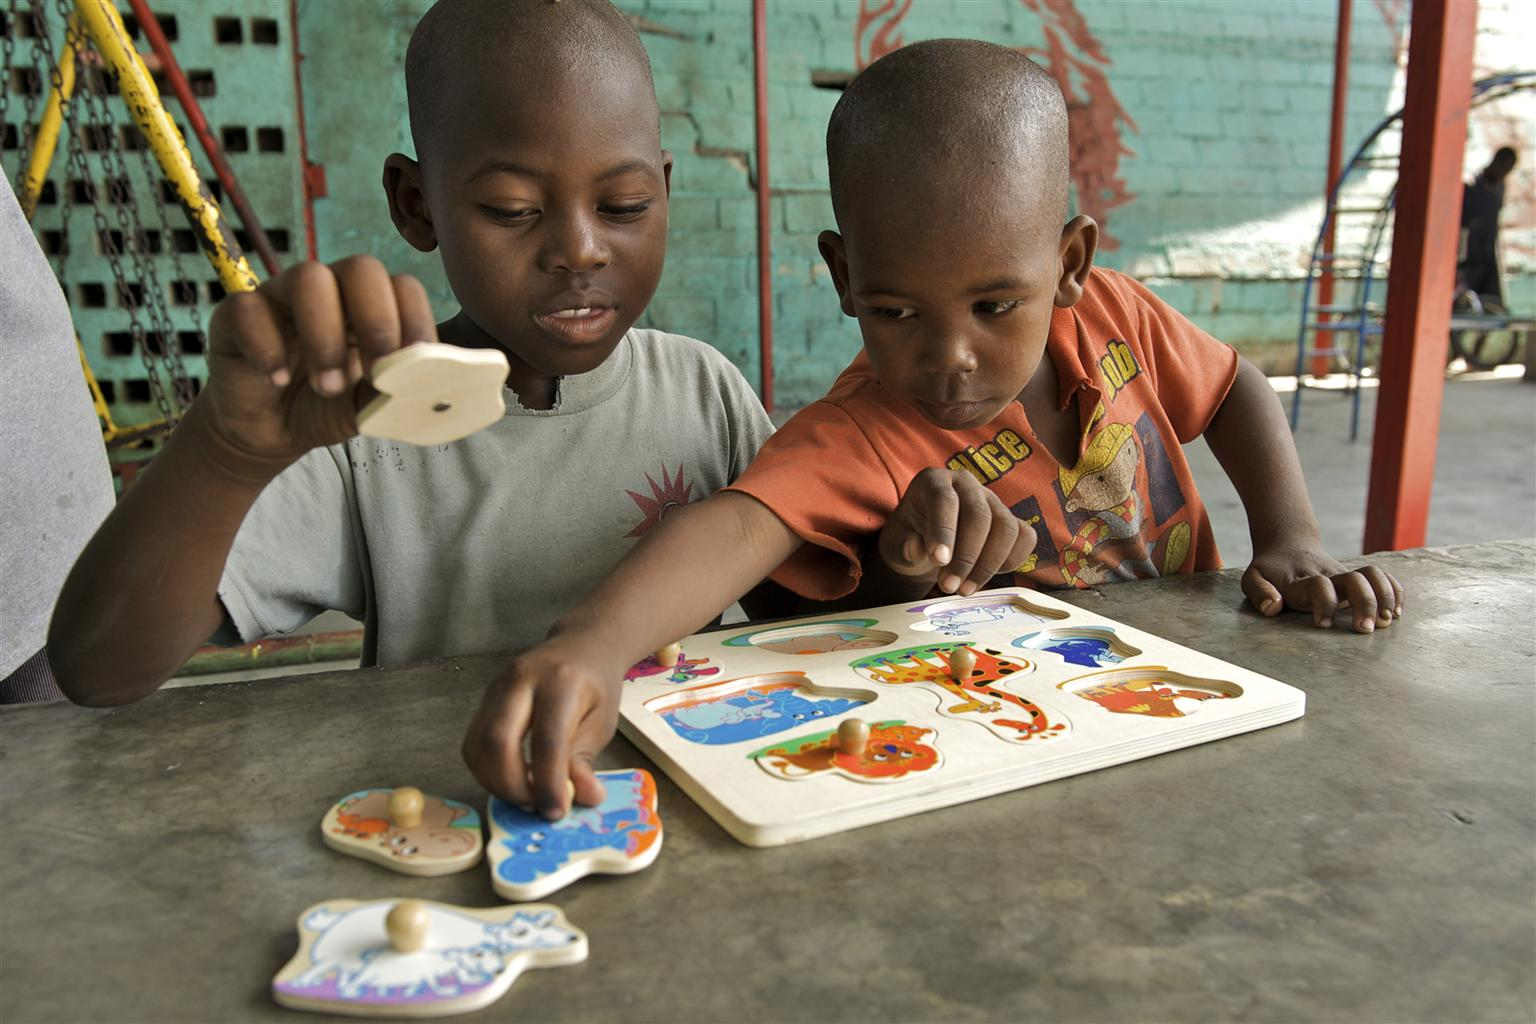 In Haiti, Steve (8) and Richard (5), play with a board puzzle from a UNICEF ECD kit.